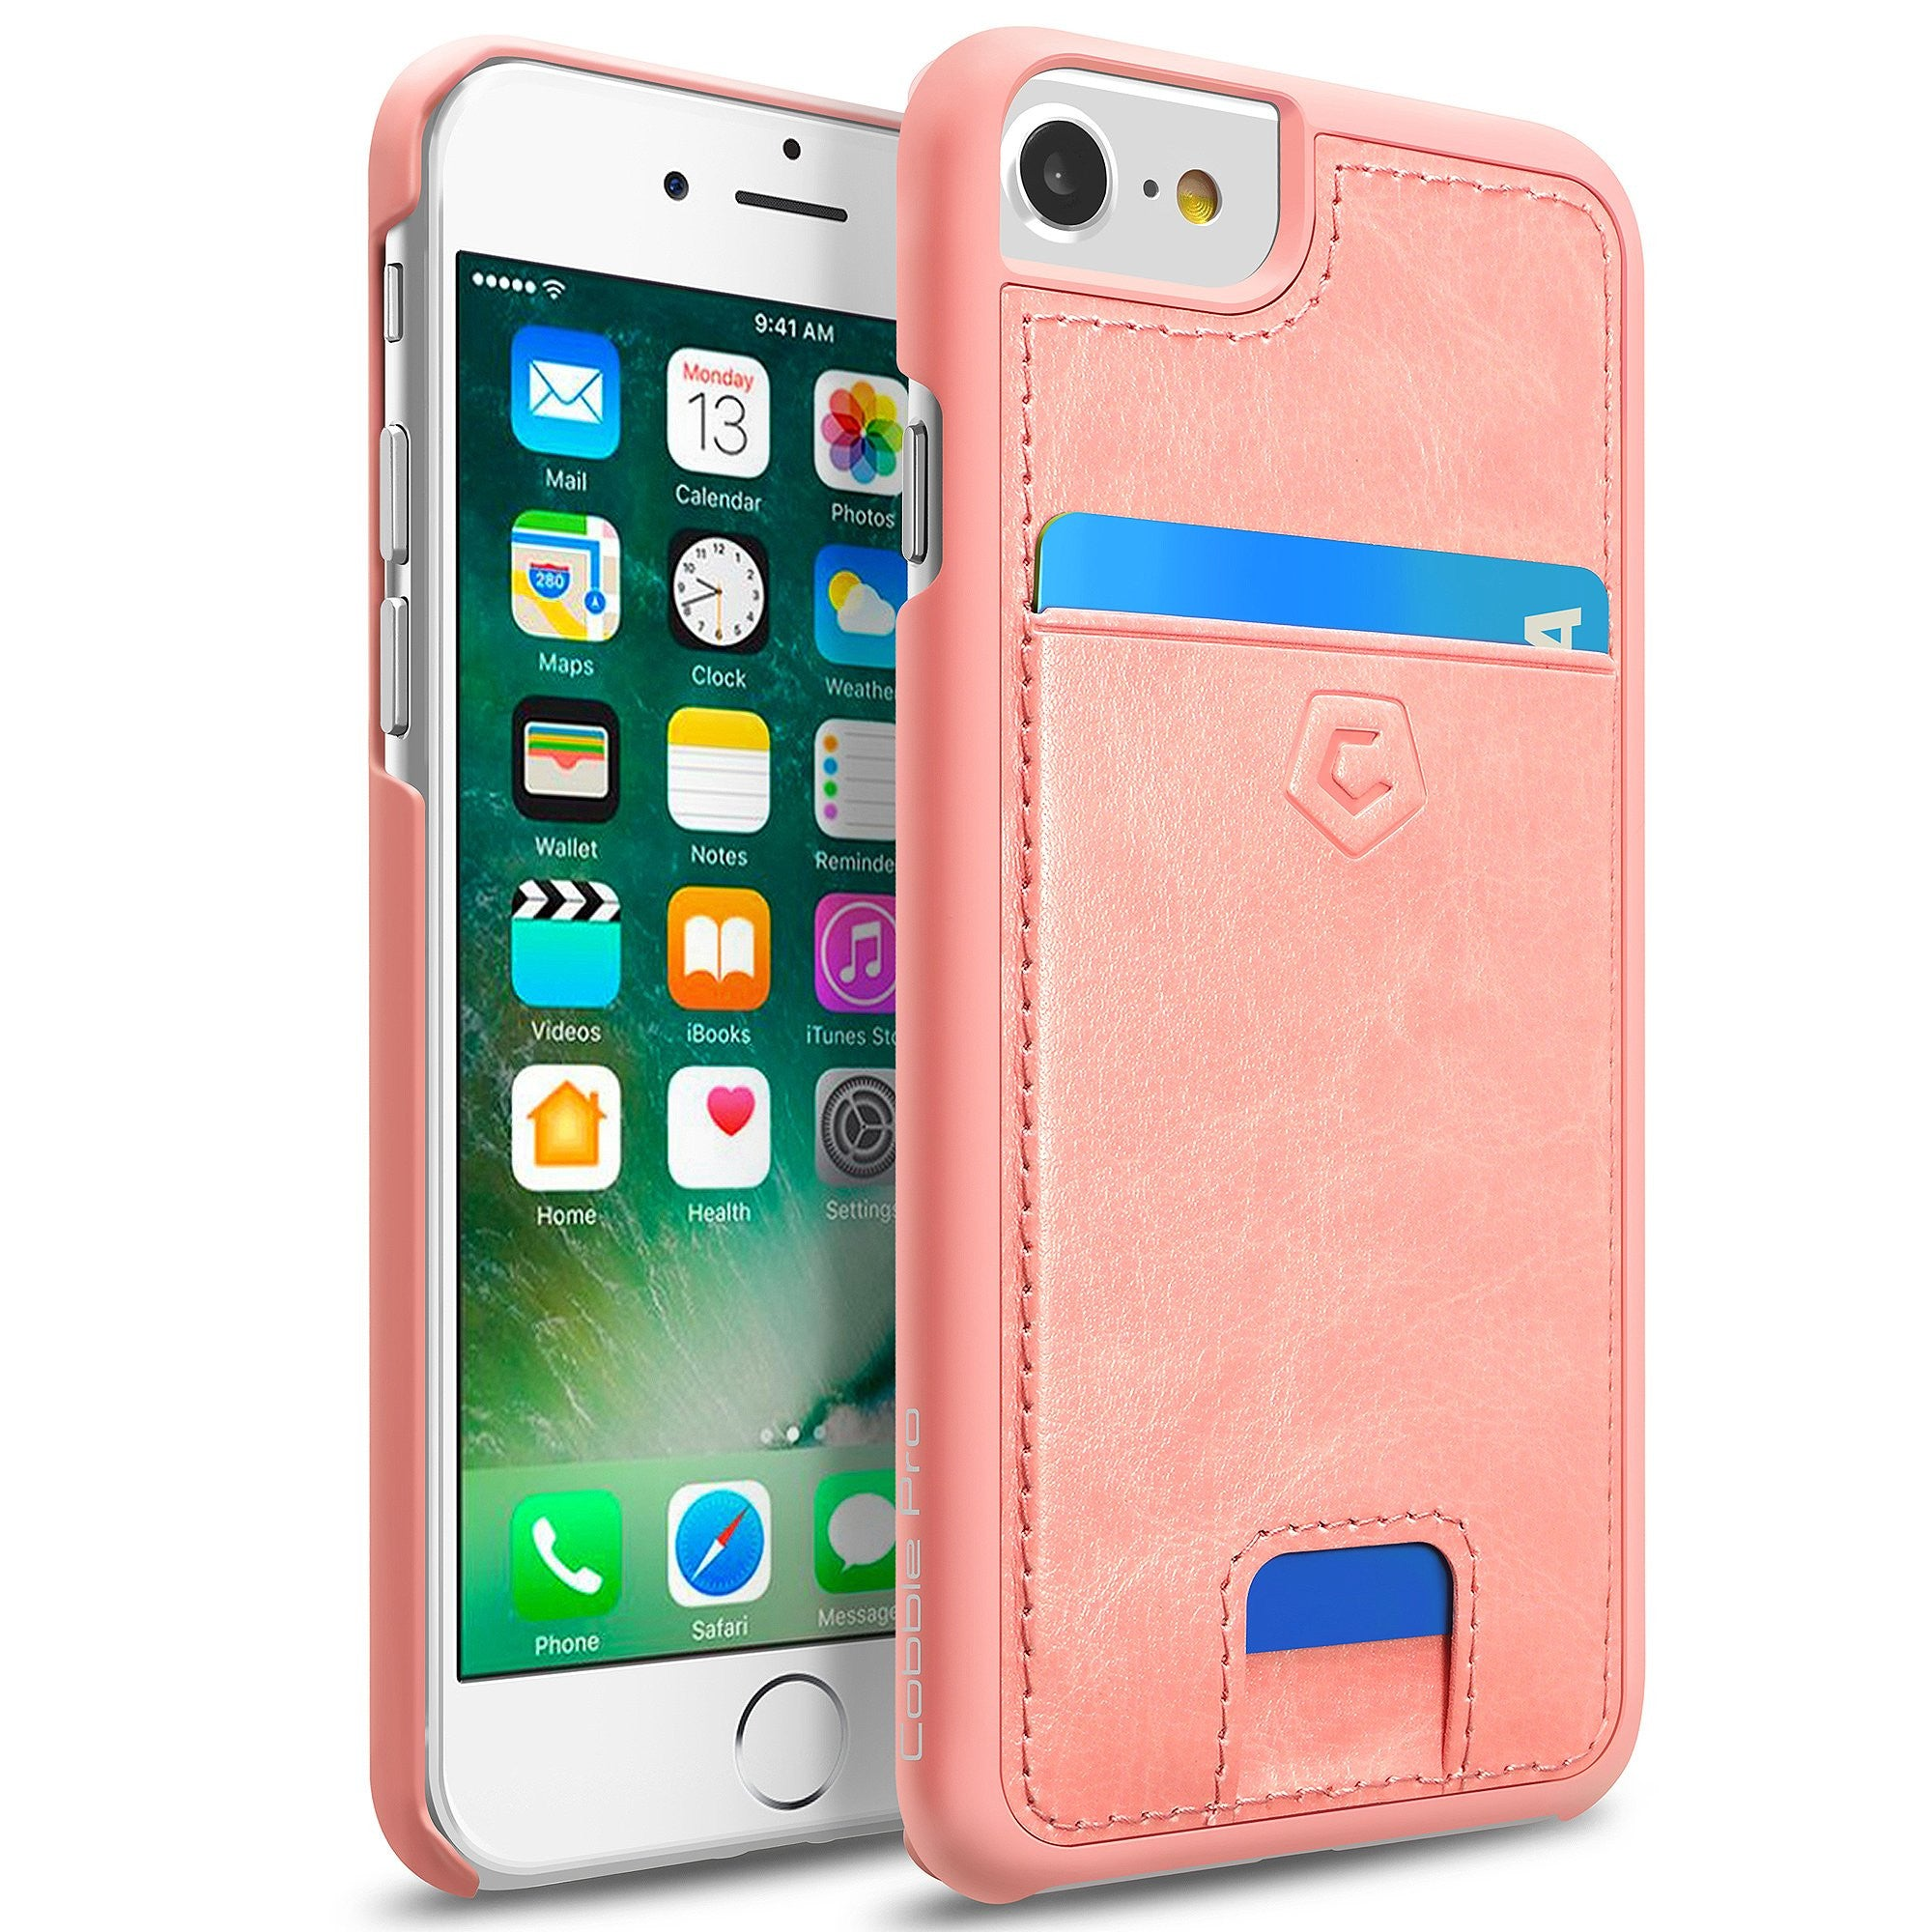 timeless design 535ec 477bb Pink Premium Synthetic Leather Back Cover with Card Slot for iPhone 6 / 6s  / 7 / 8